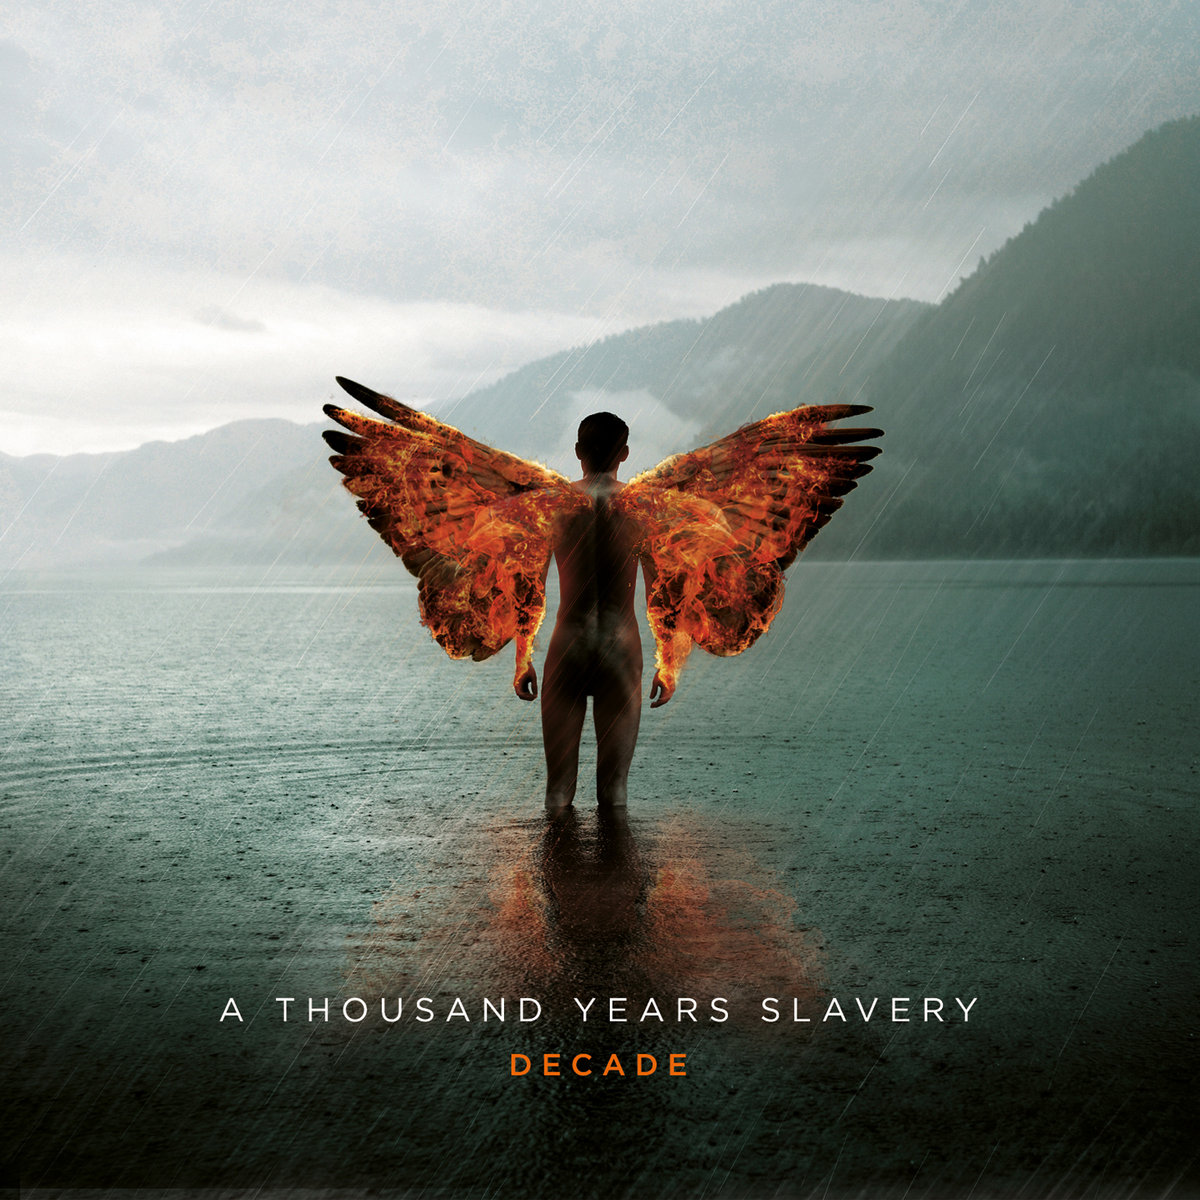 A Thousand Years Slavery Image